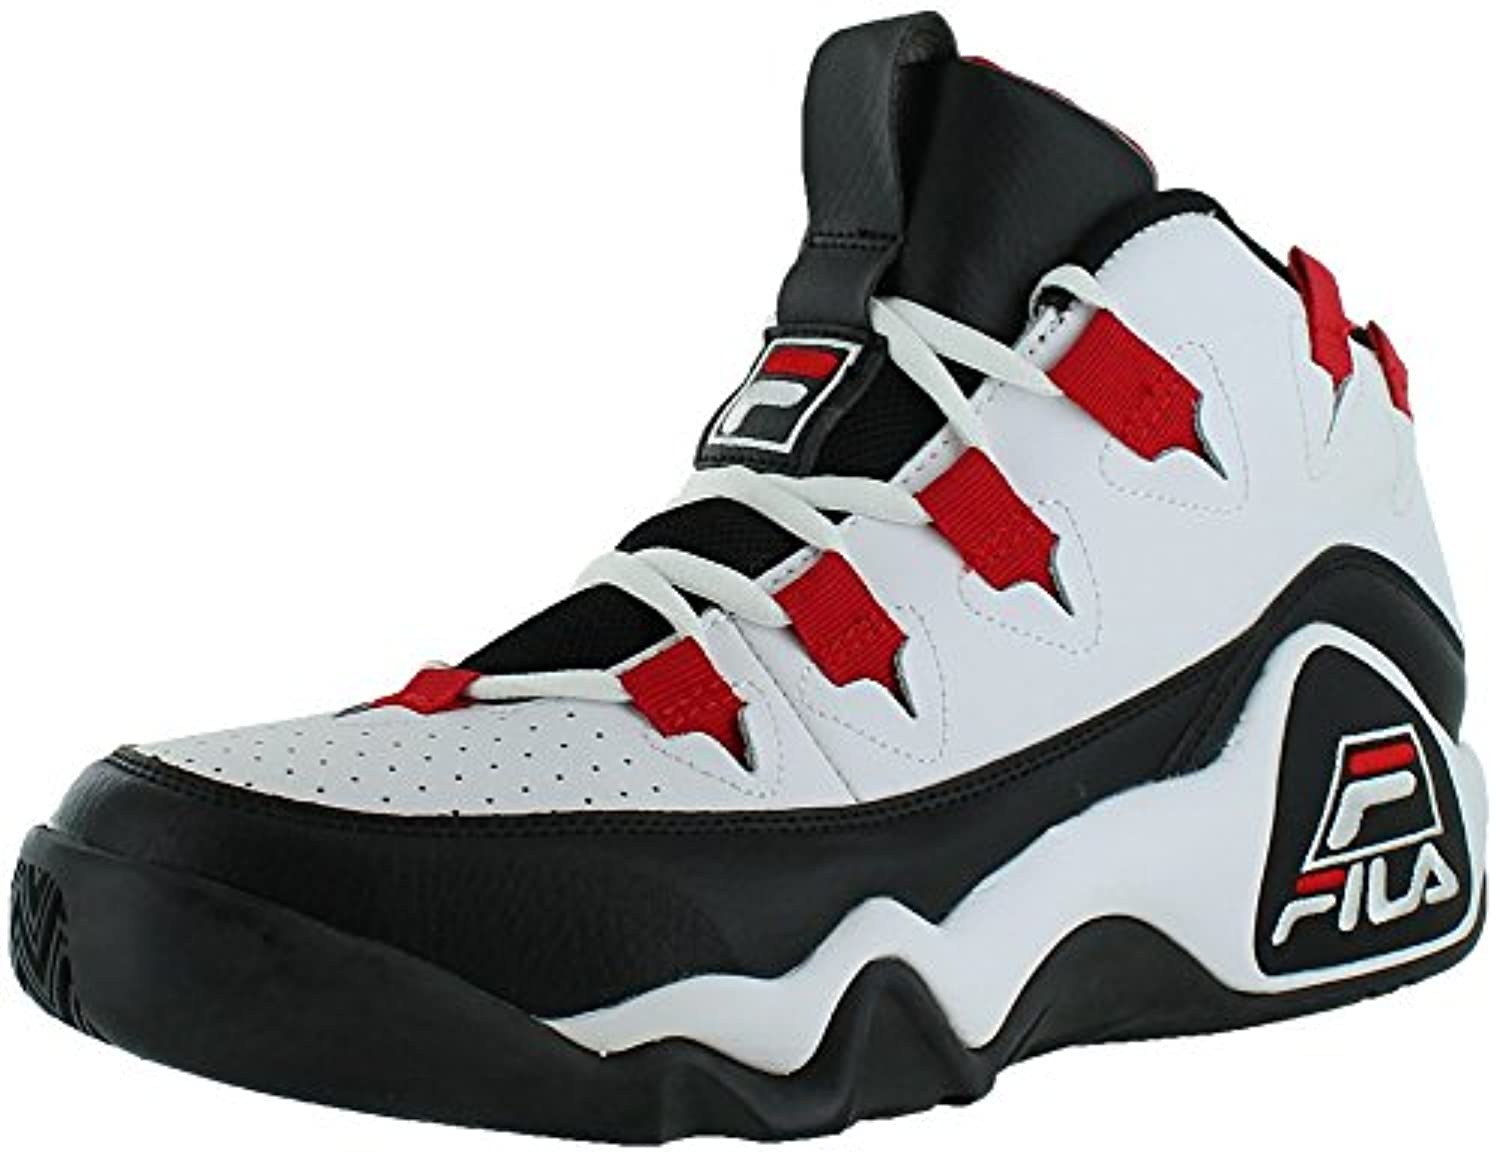 Fila Red Black And White Shoes